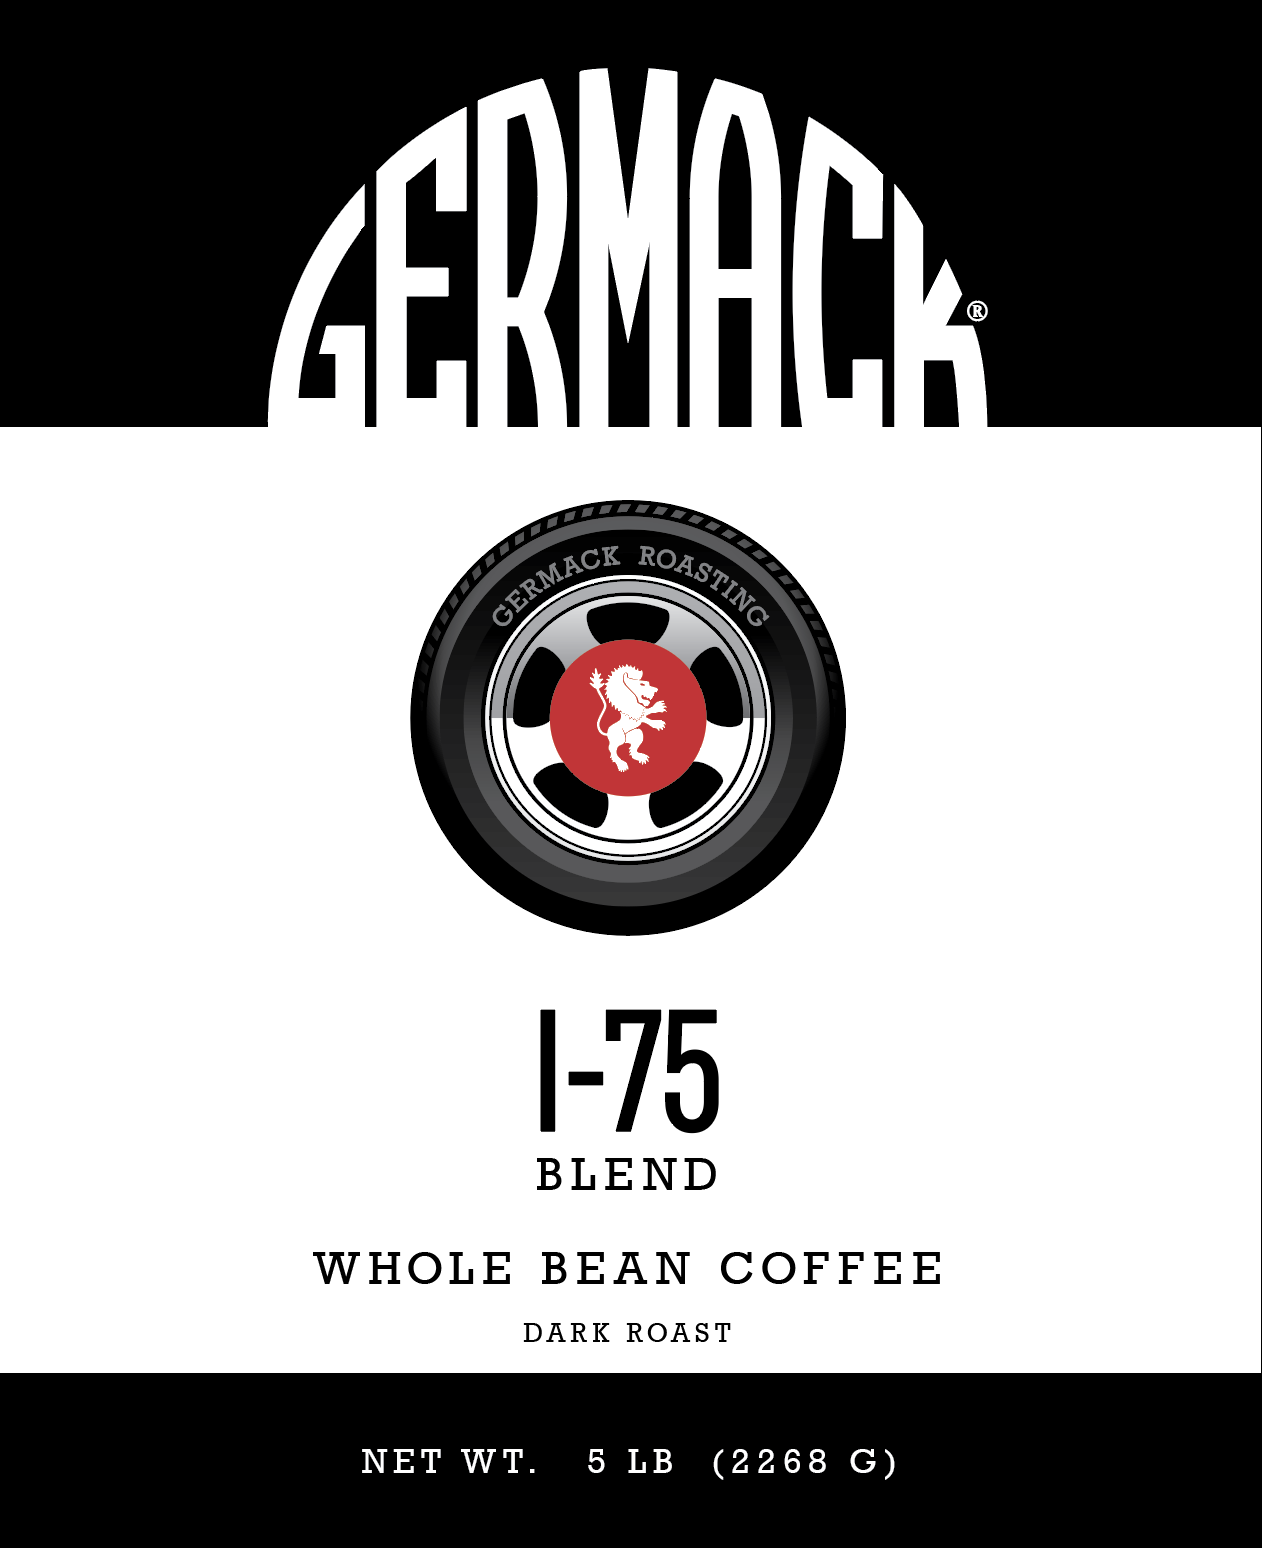 Picture Germack Coffee Blend (5 LB.) - I-75